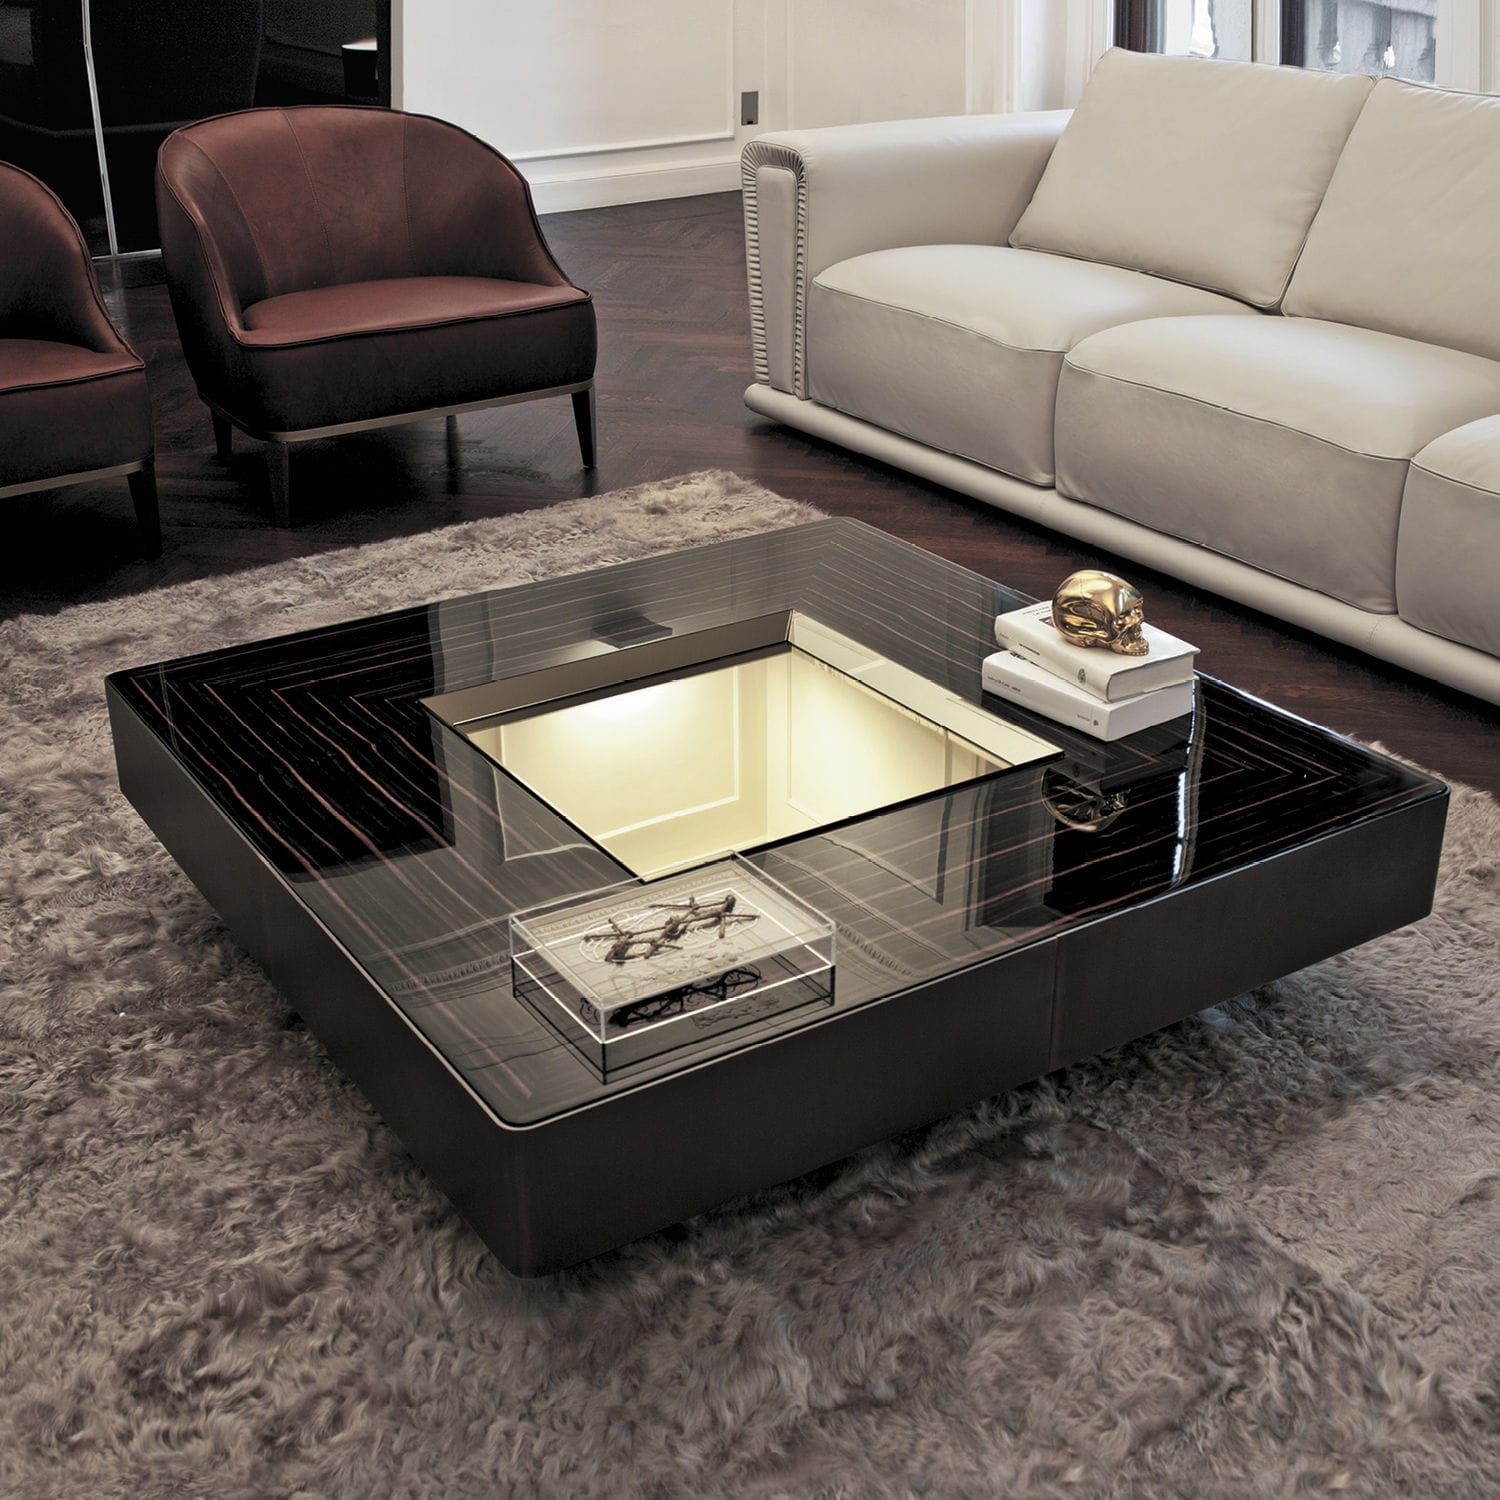 table basse cuir | Center table living room, Centre table living room, Centre table design